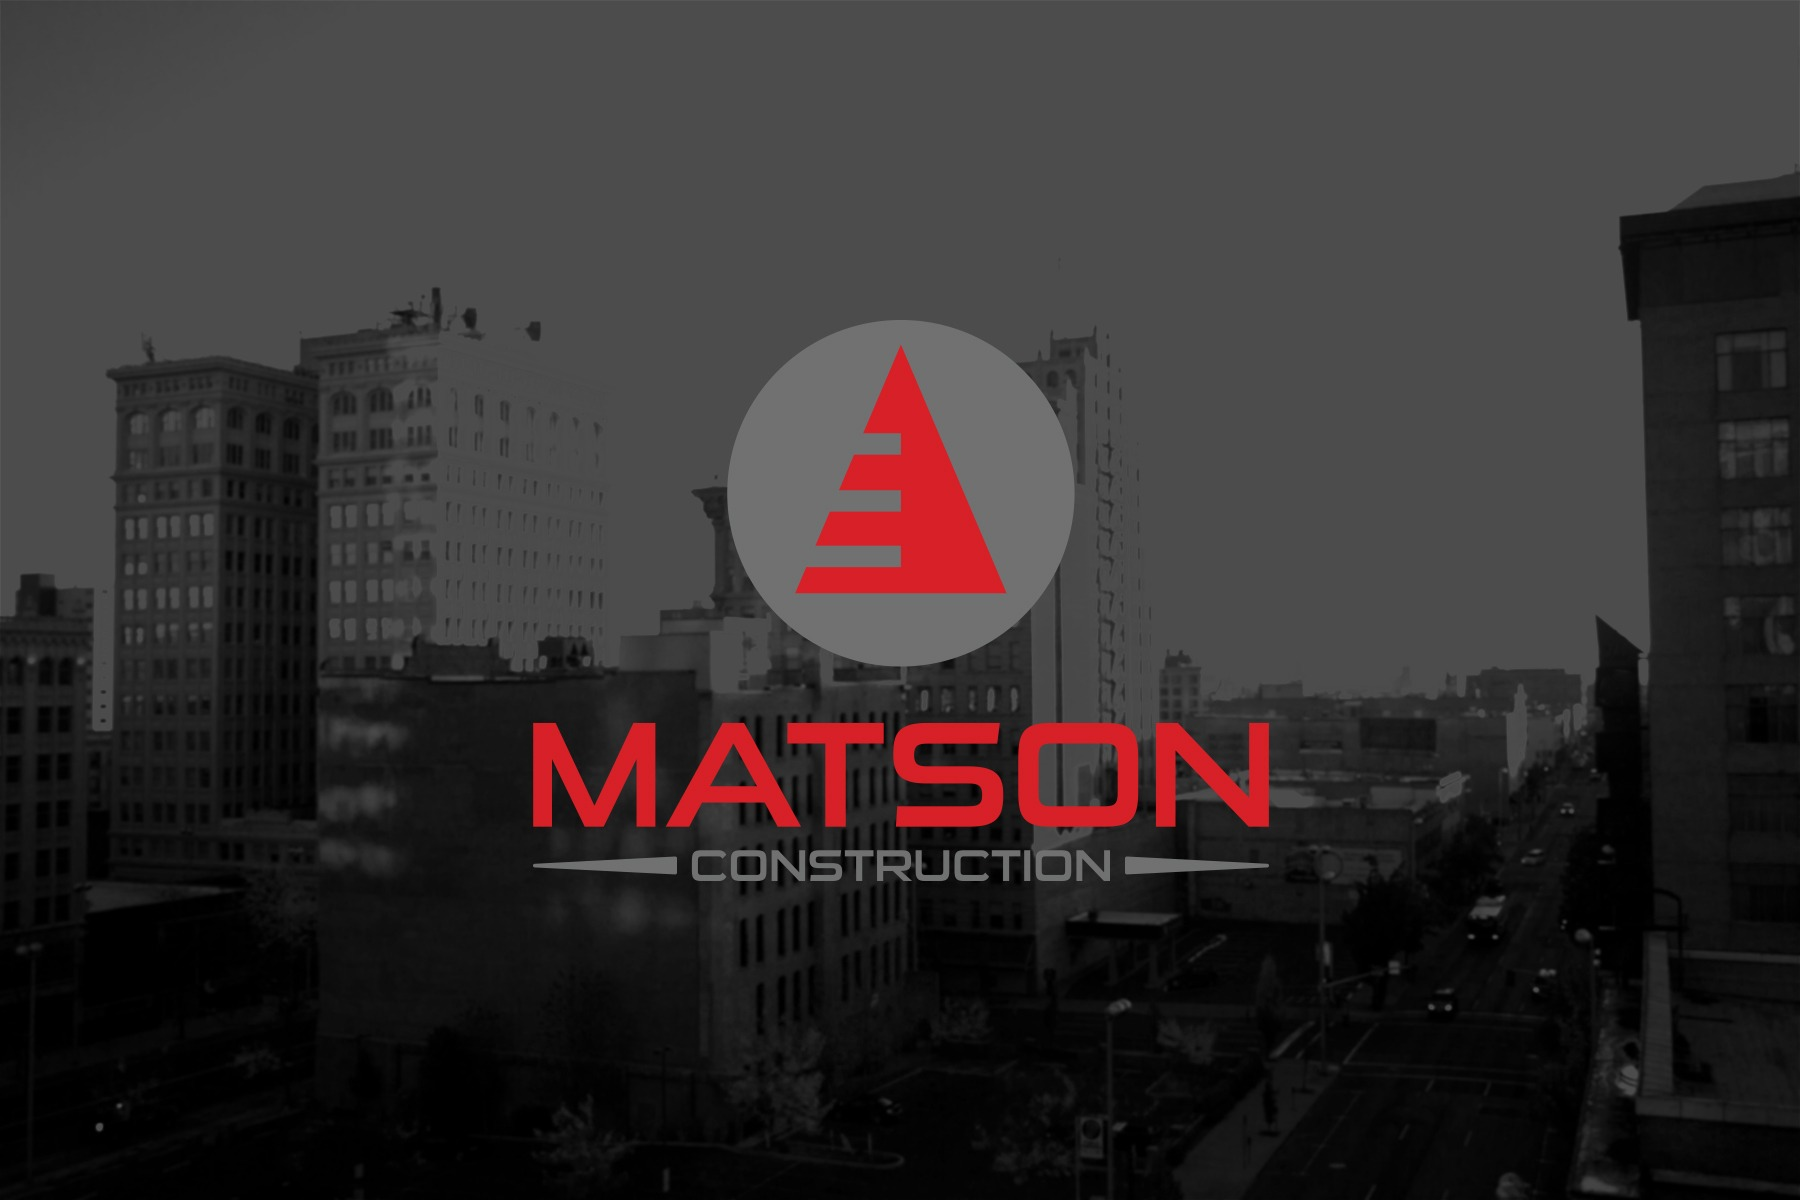 Matson Construction